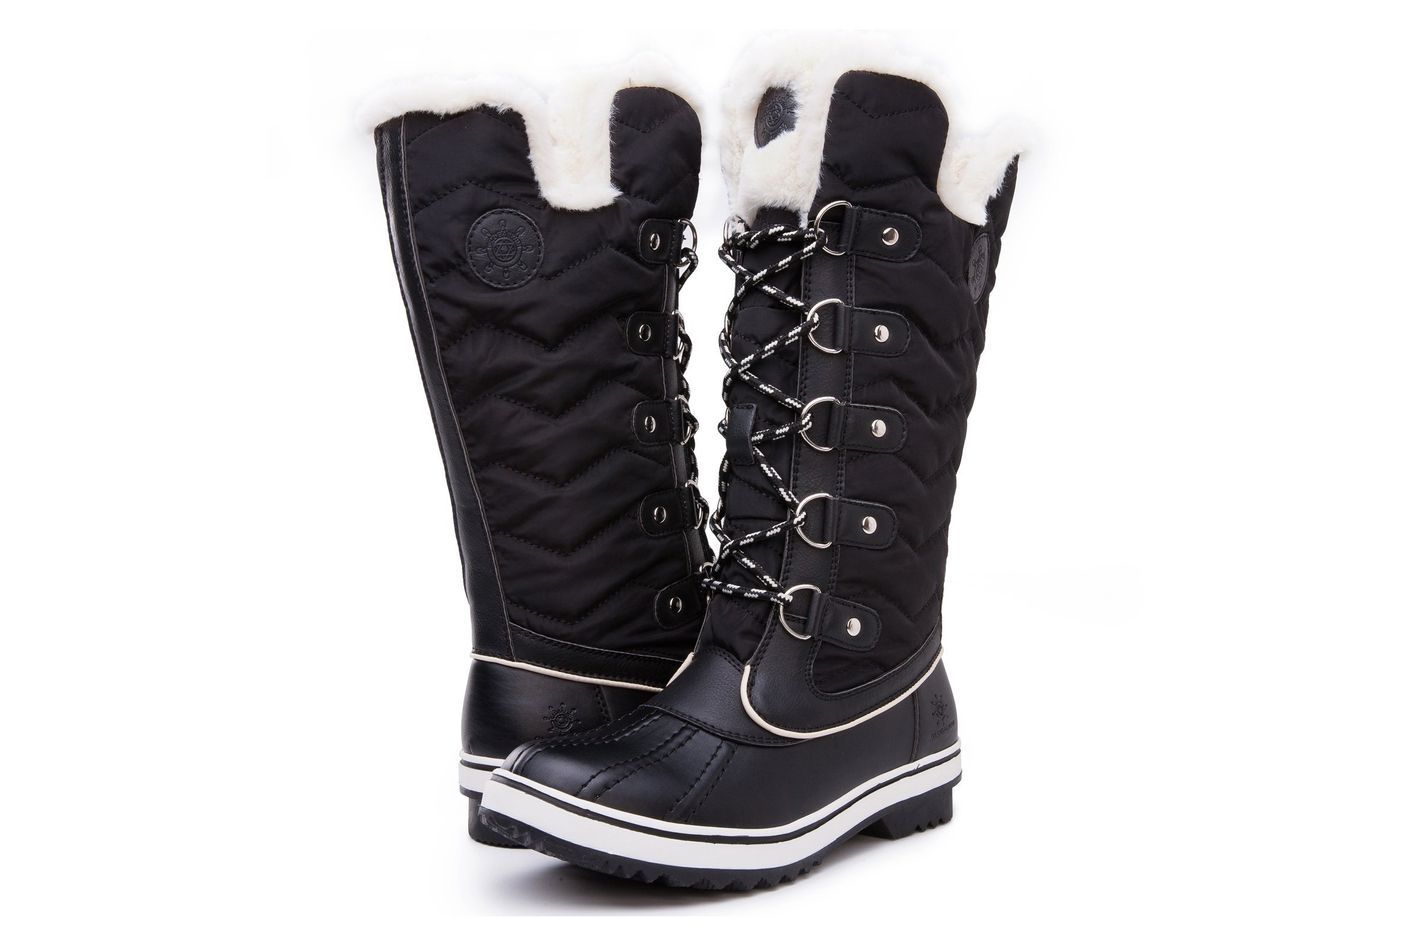 81b88f8be48cc Best Winter Boots for Women 2018